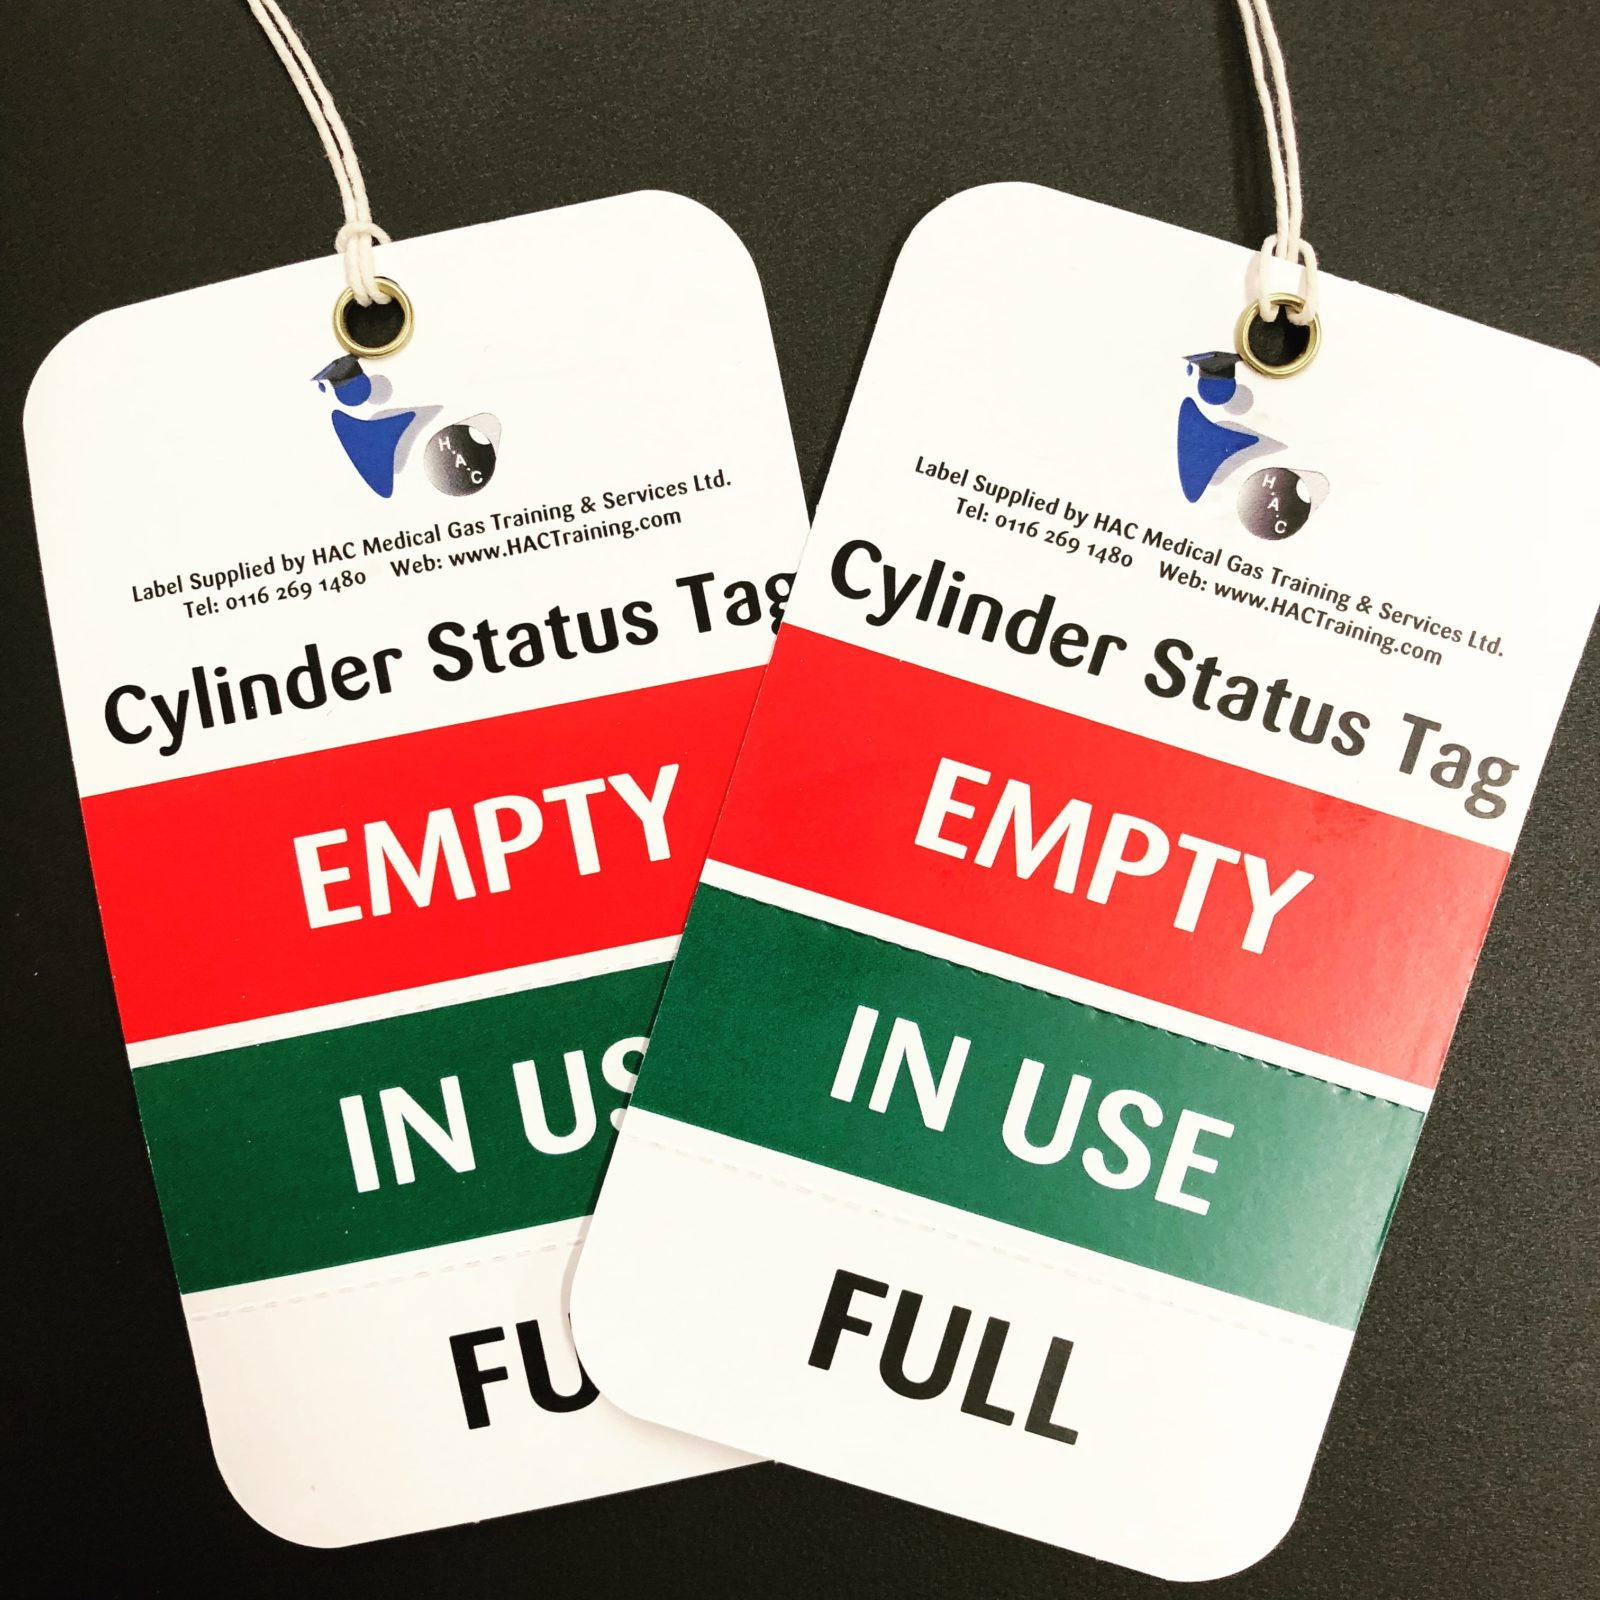 Cylinder Status Tag